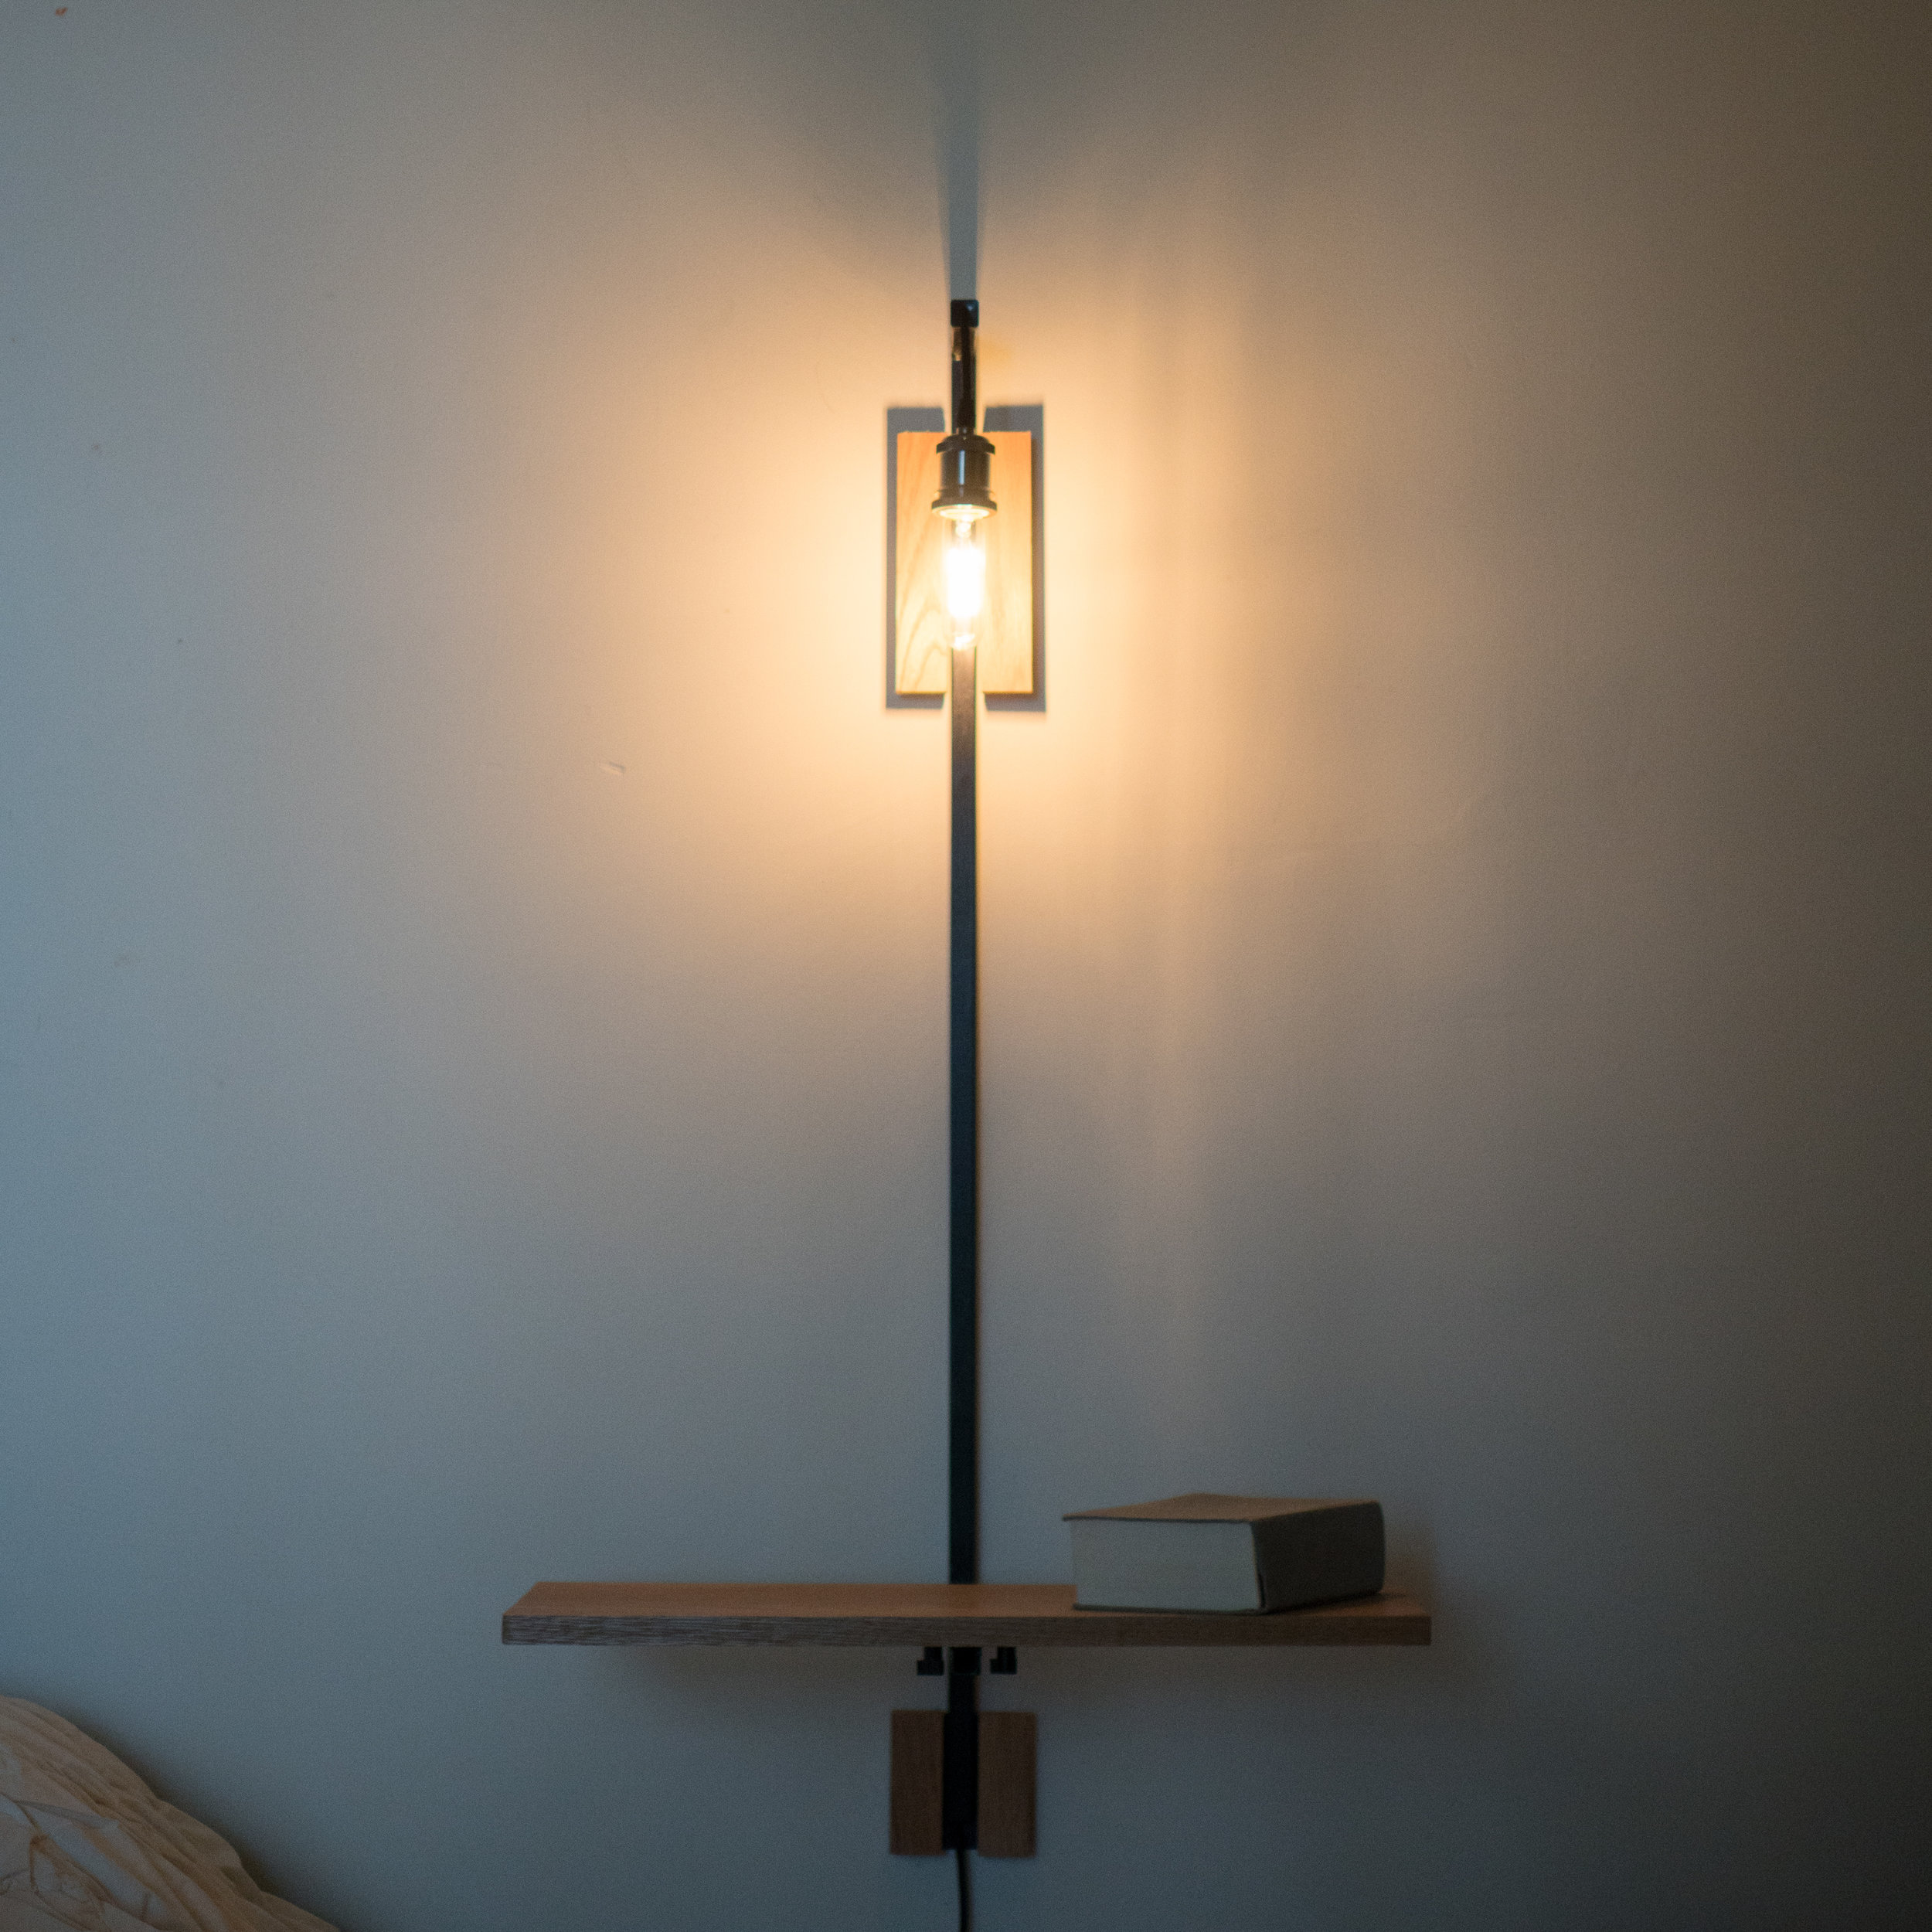 WALL MOUNTED TABLE + LAMP  SOLD OUT